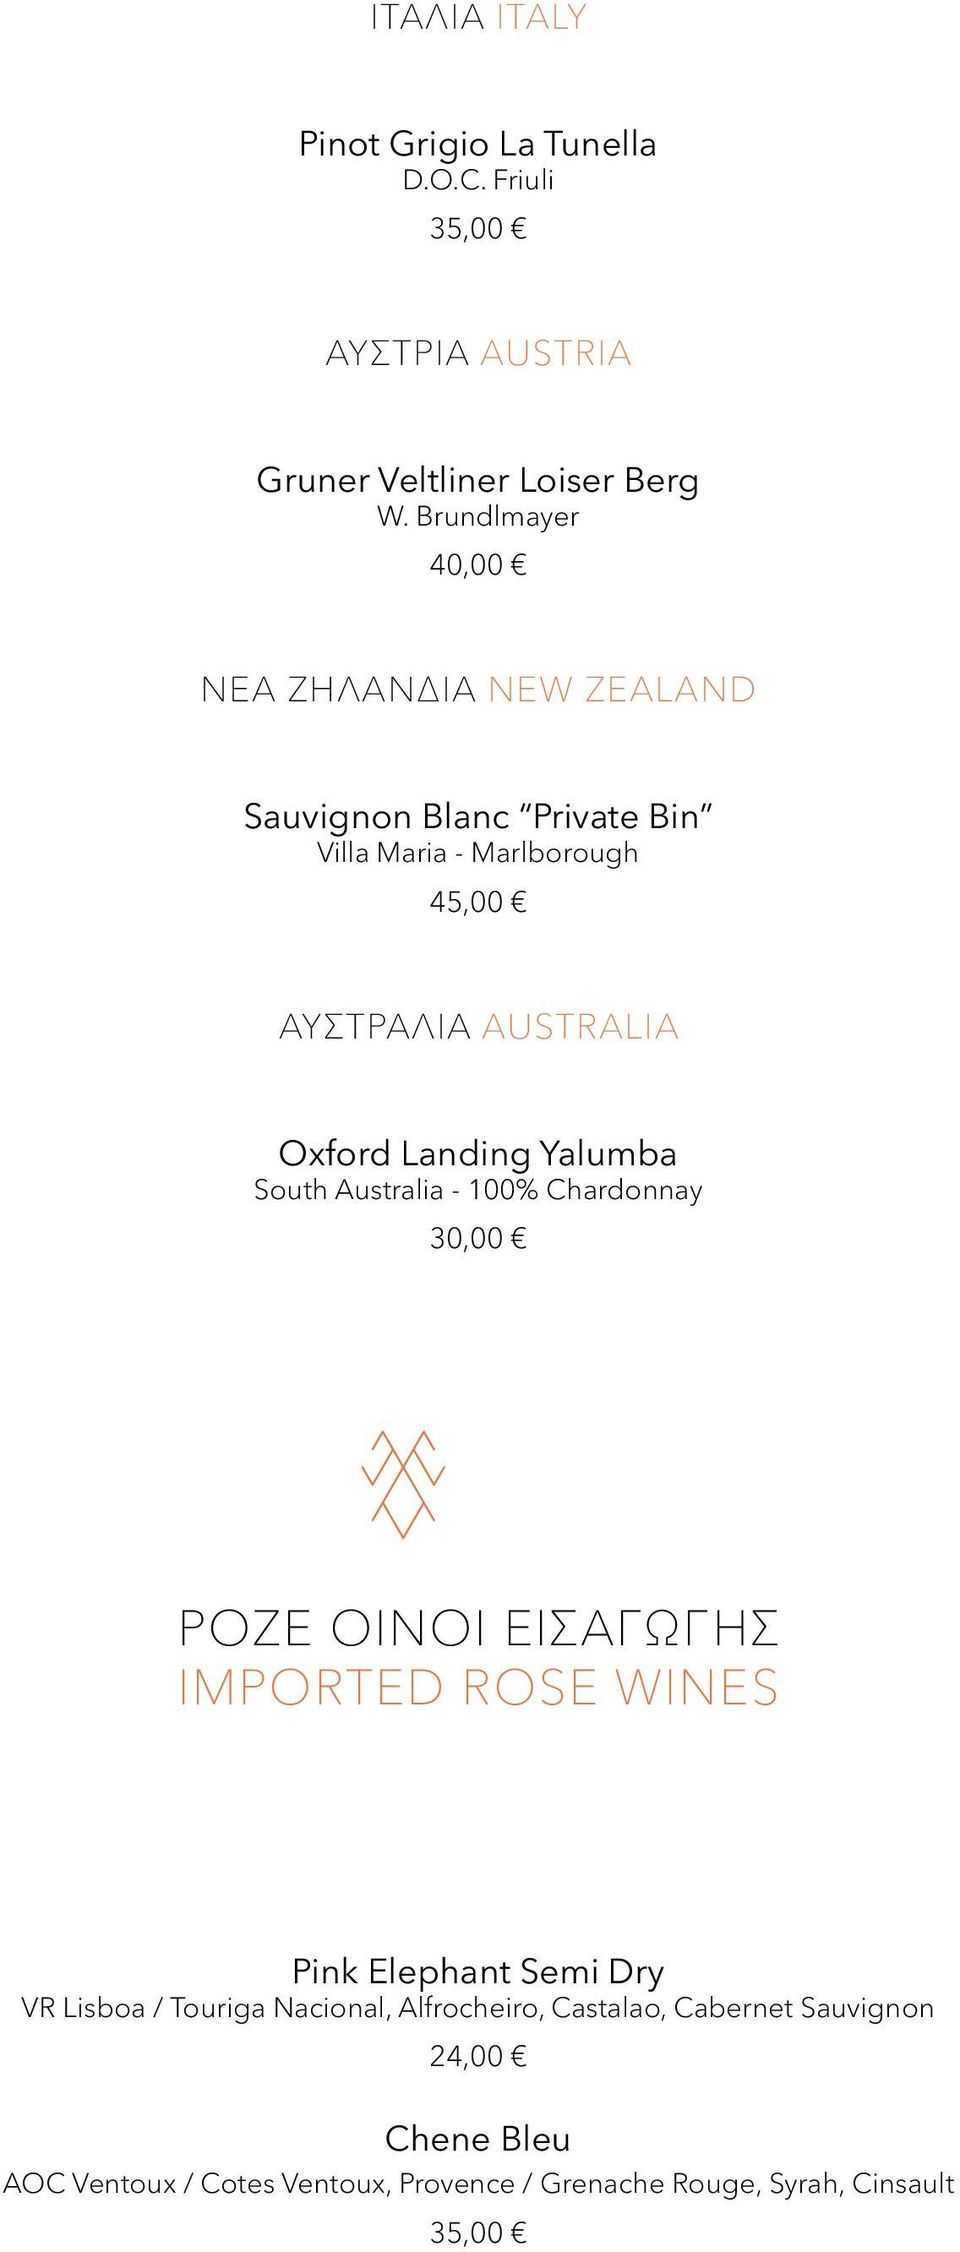 Landing Yalumba South Australia - 100% Chardonnay 30,00 ΡΟΖΕ ΟΙΝΟΙ EIΣΑΓΩΓΗΣ IMPORTED ROSE WINES Pink Elephant Semi Dry VR Lisboa